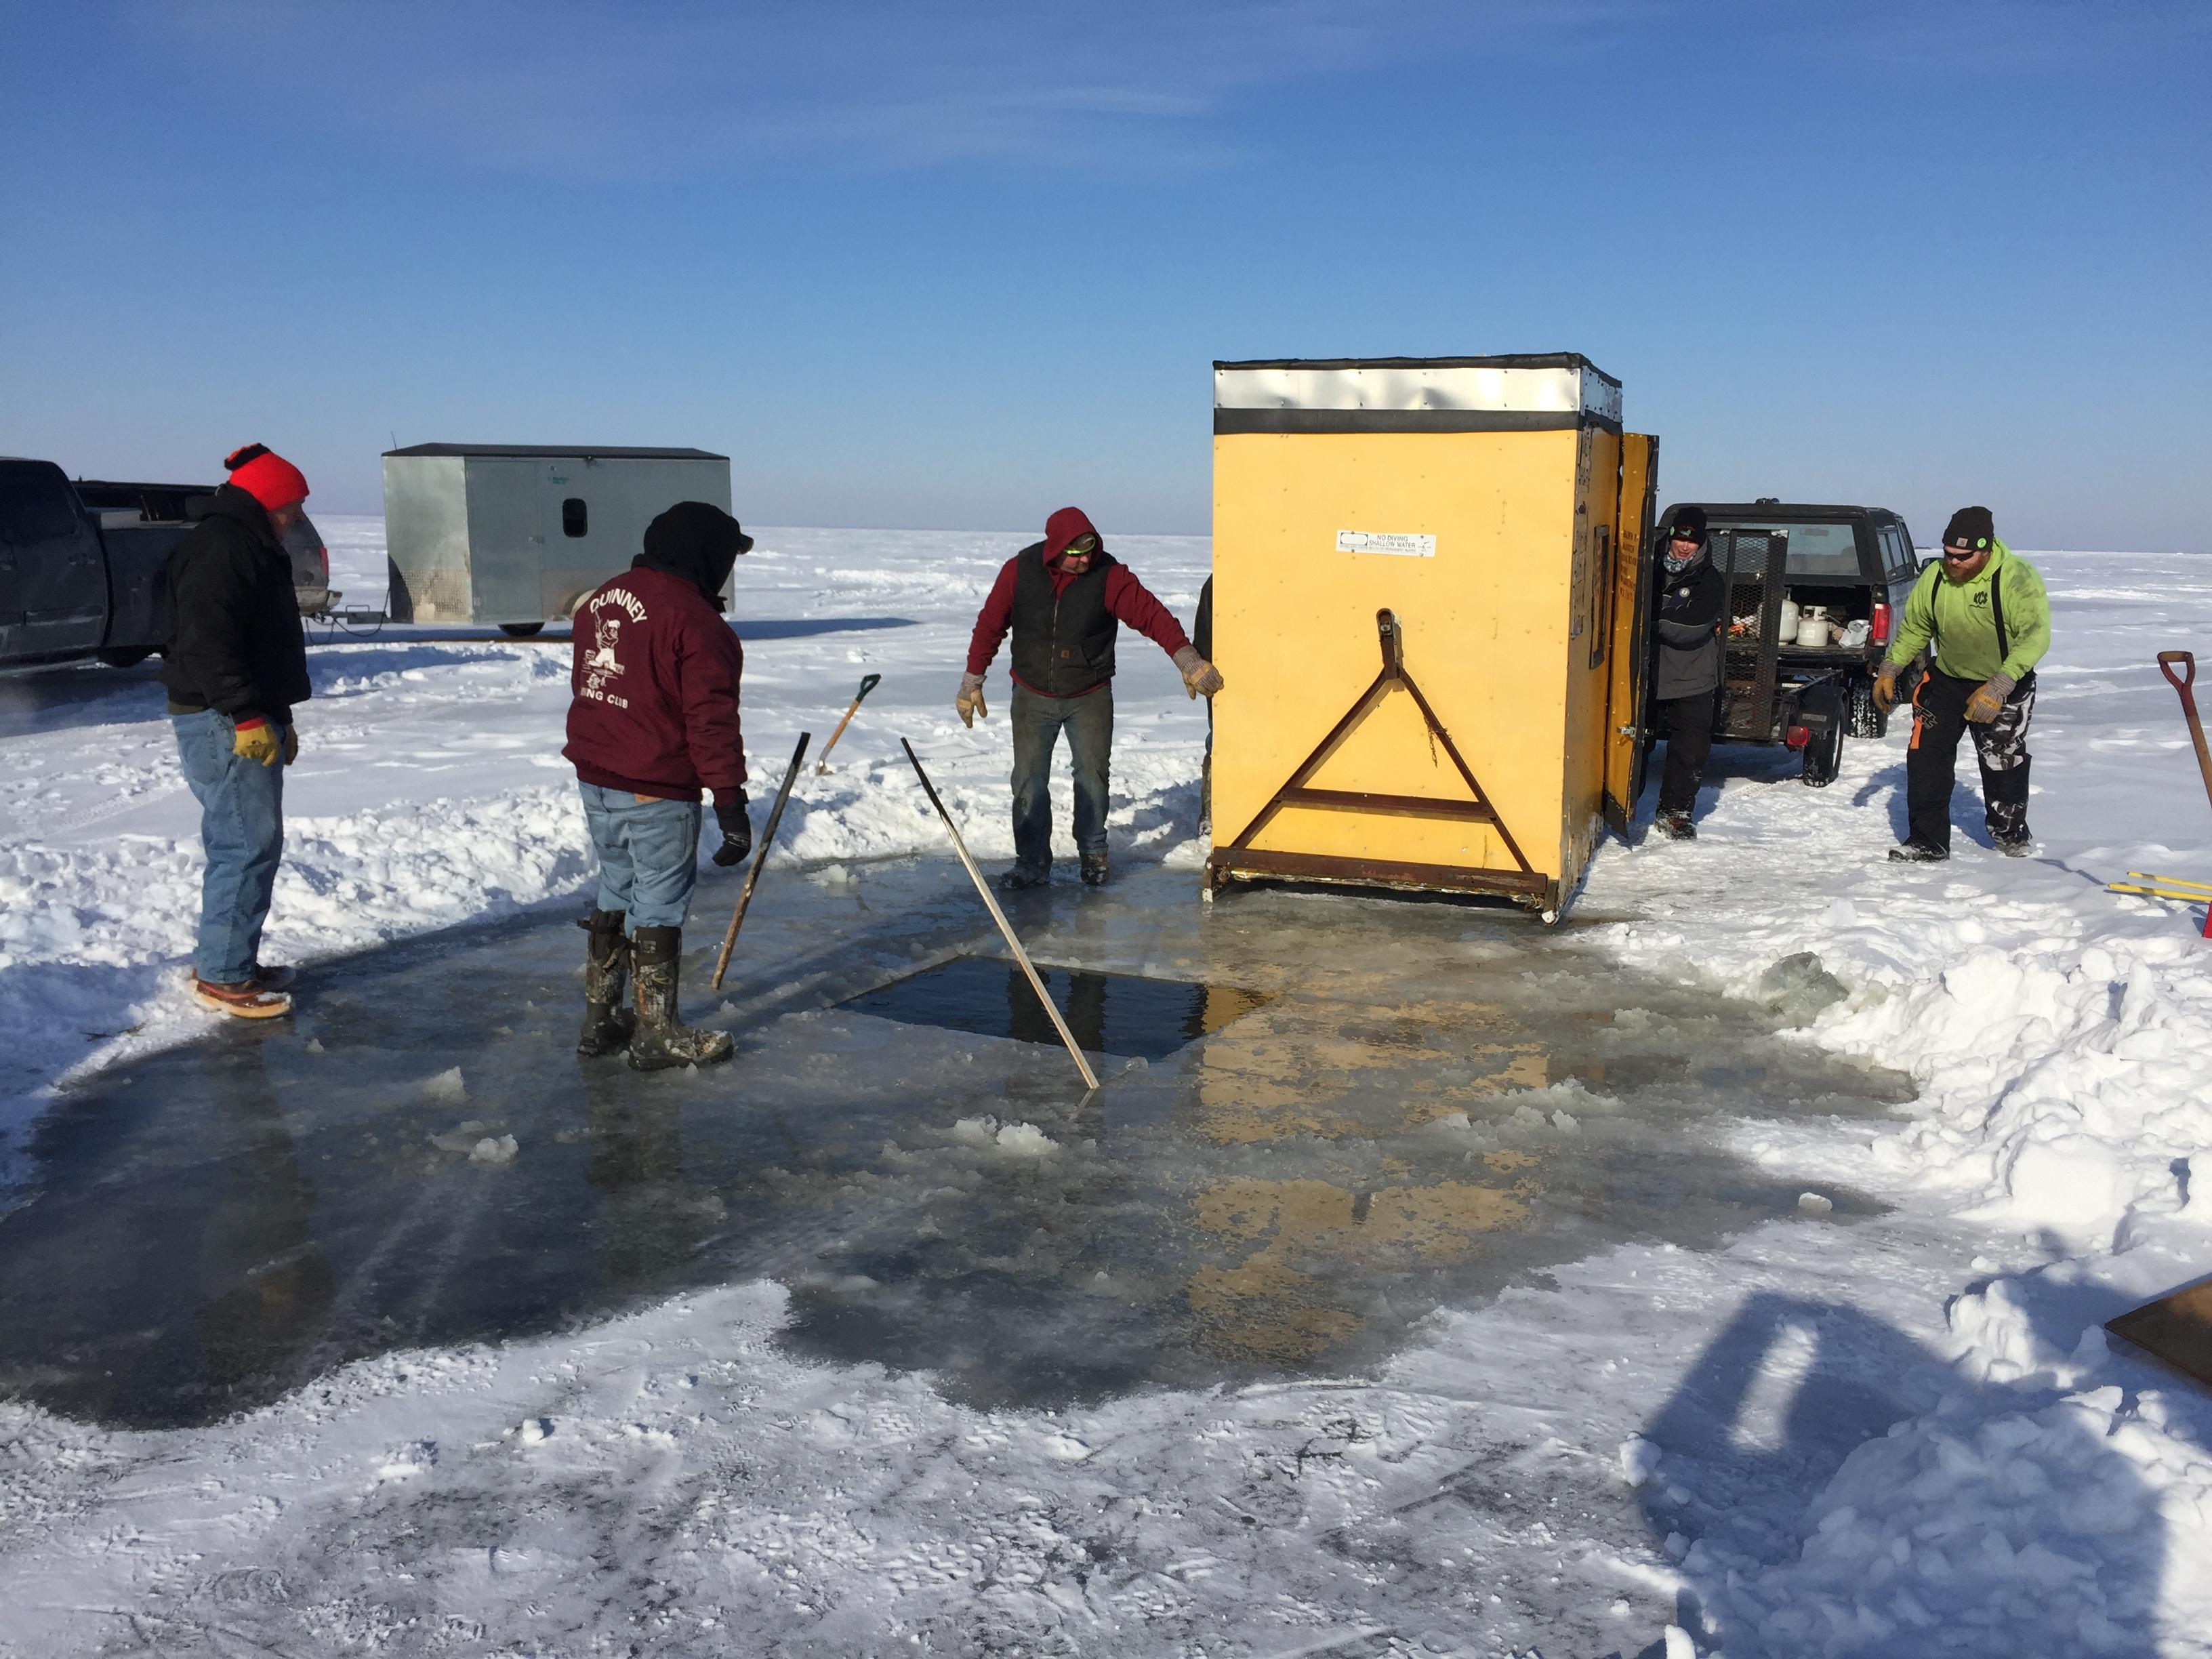 Sturgeon spearing shanty to be moved over Lake Winnebago hole, February 8, 2018 (WLUK/Eric Peterson)